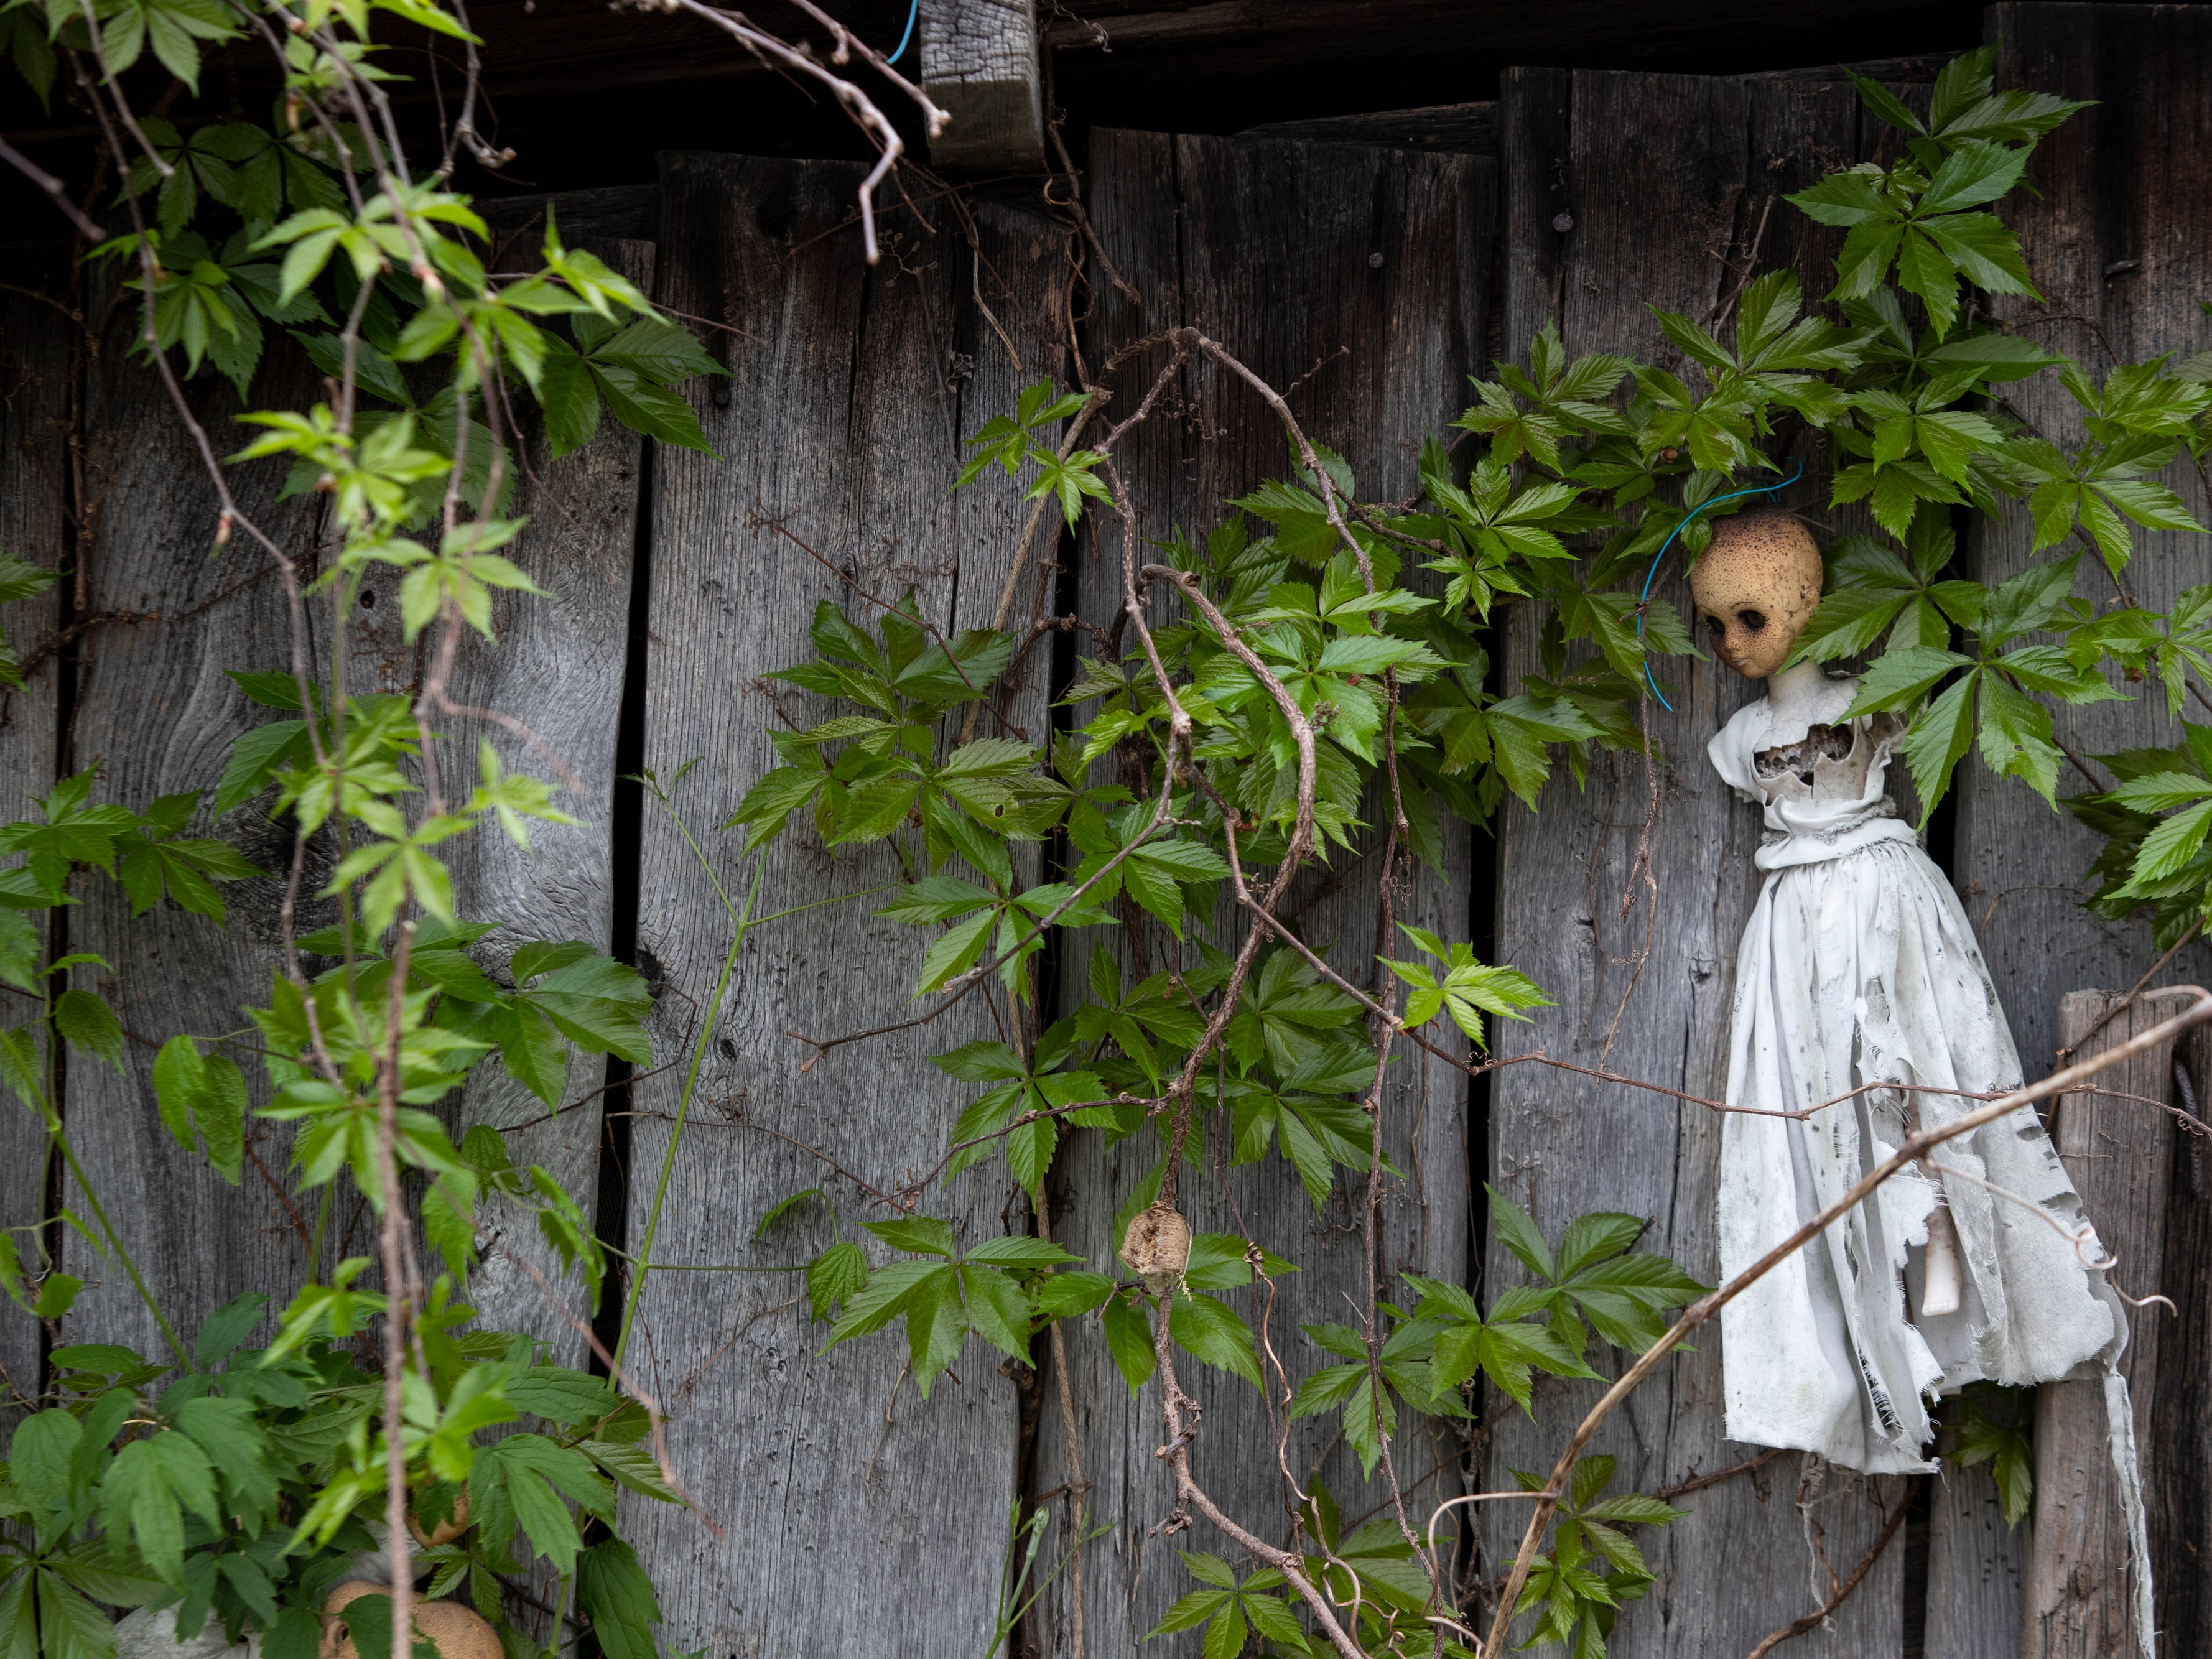 A small doll in a gown decays on the side of a building among the vines at the Home for Wayward Babydolls. April 19, 2019